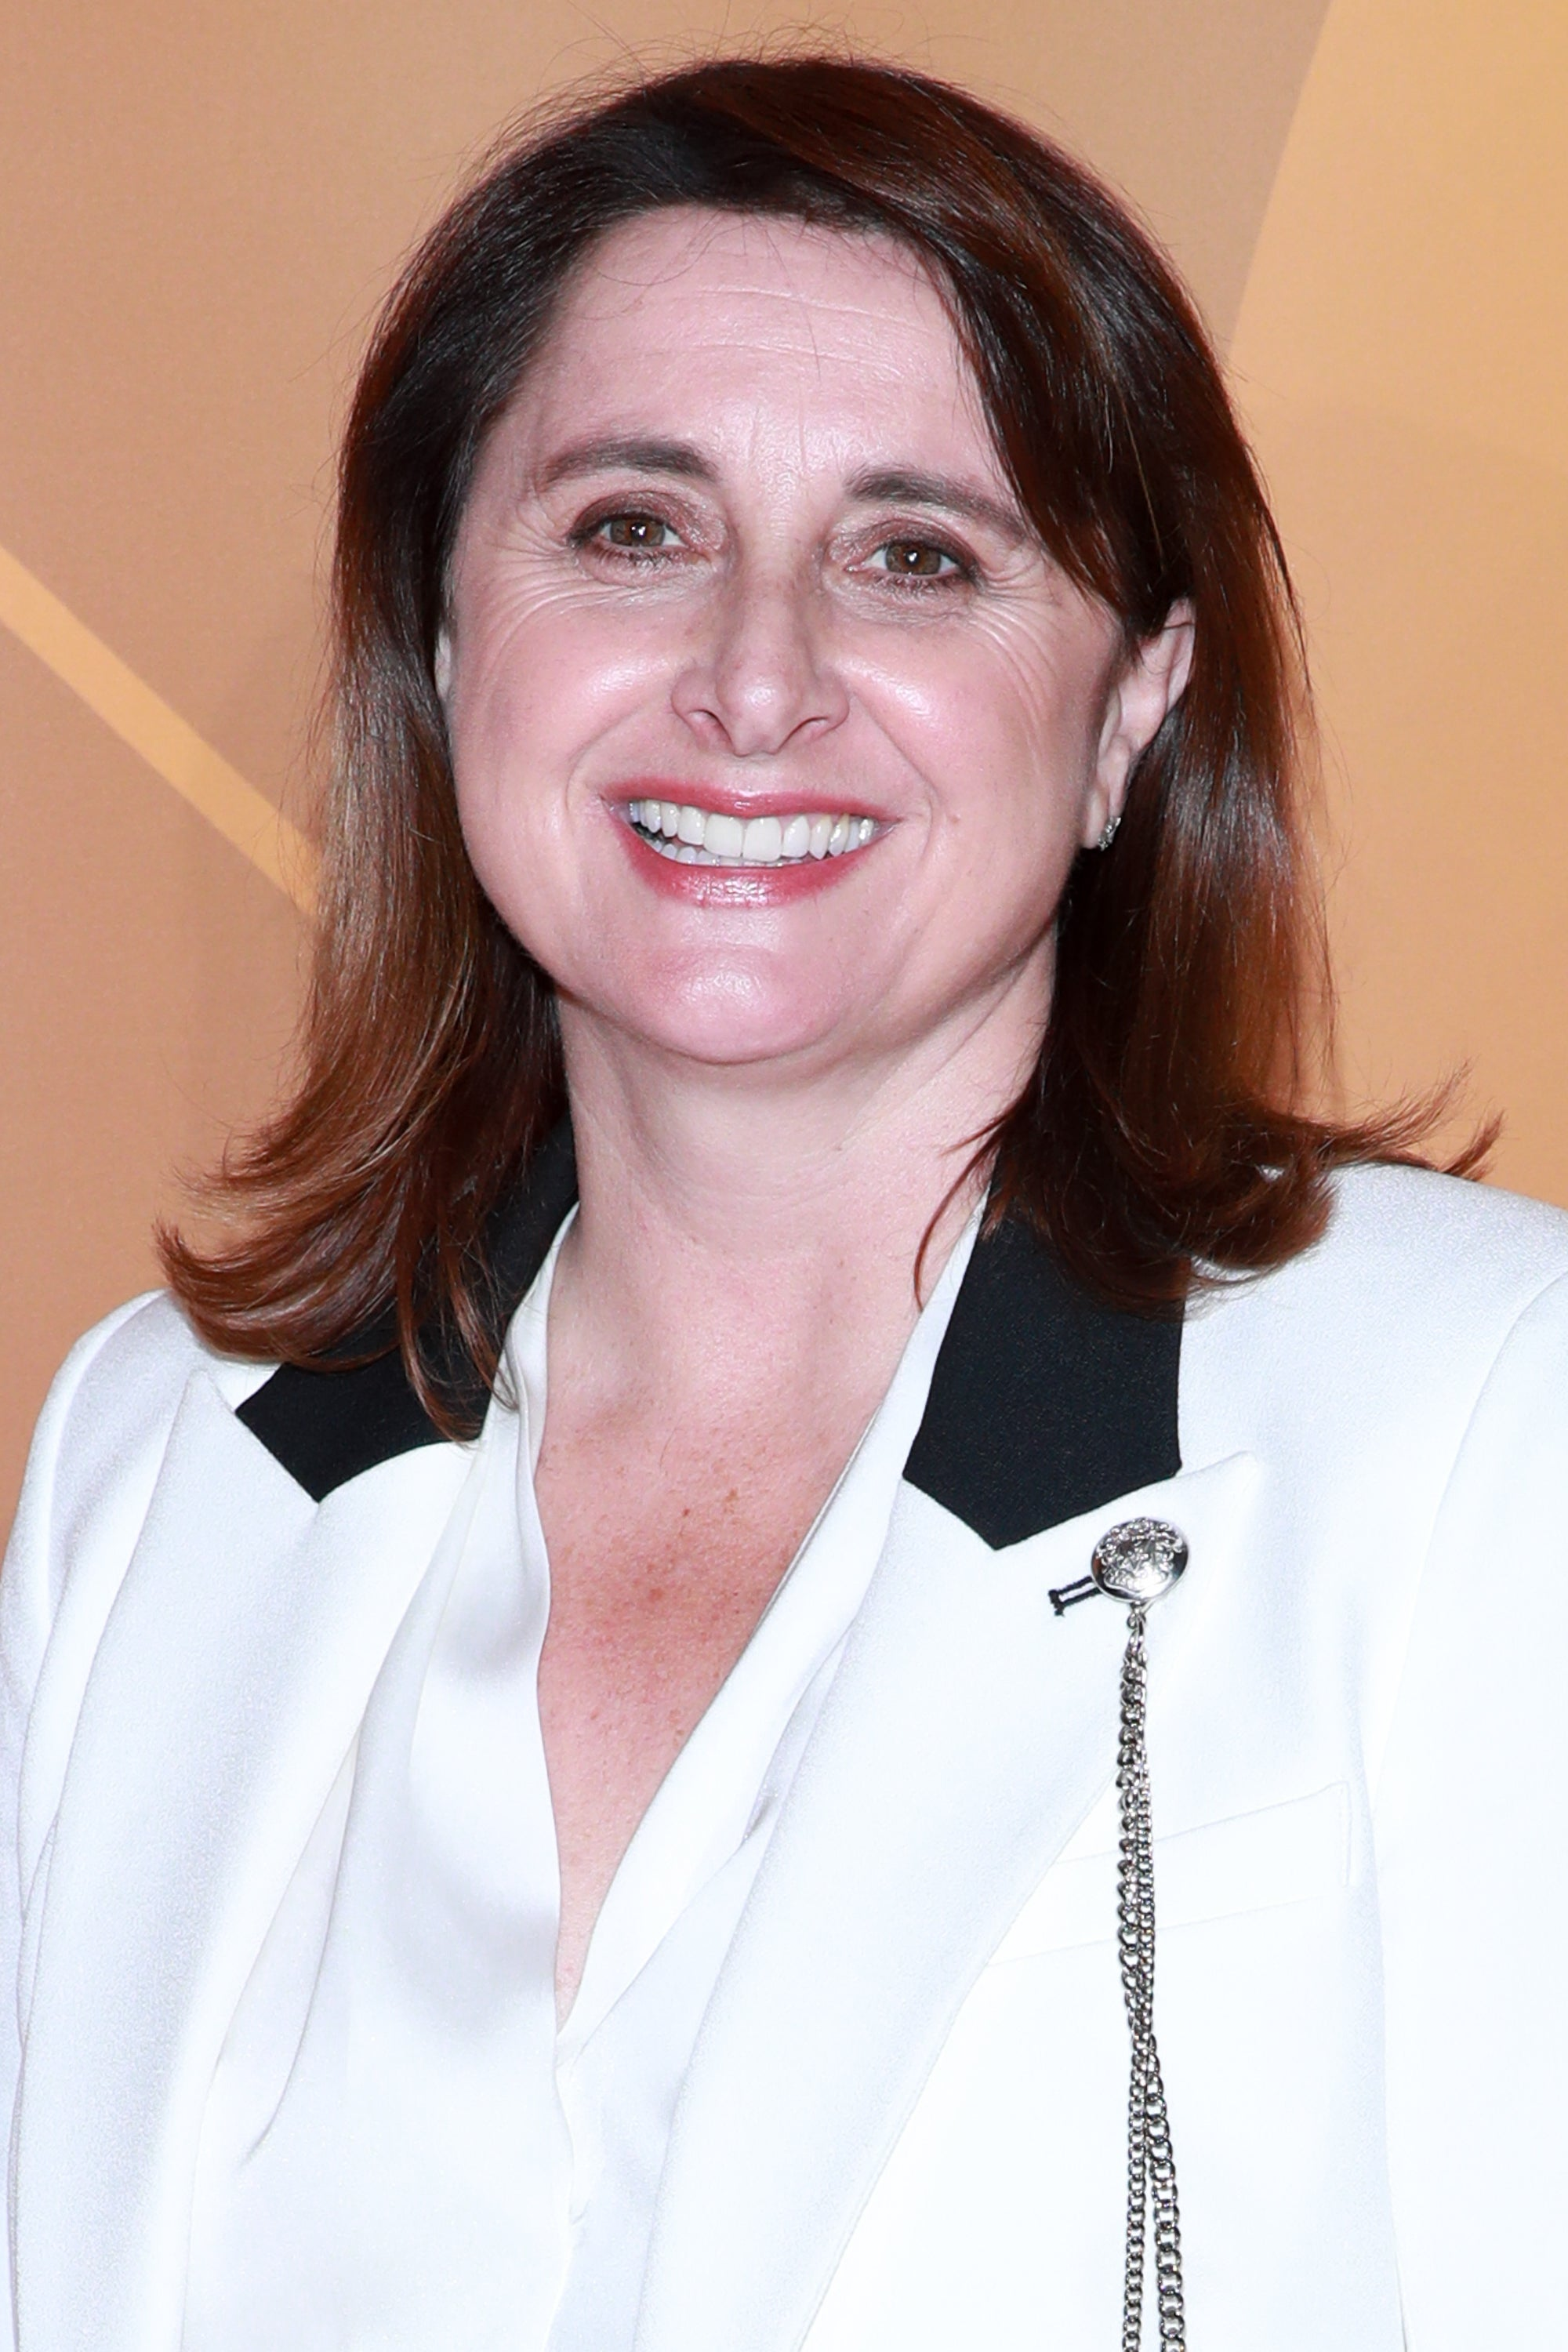 Marvel executive Victoria Alonso